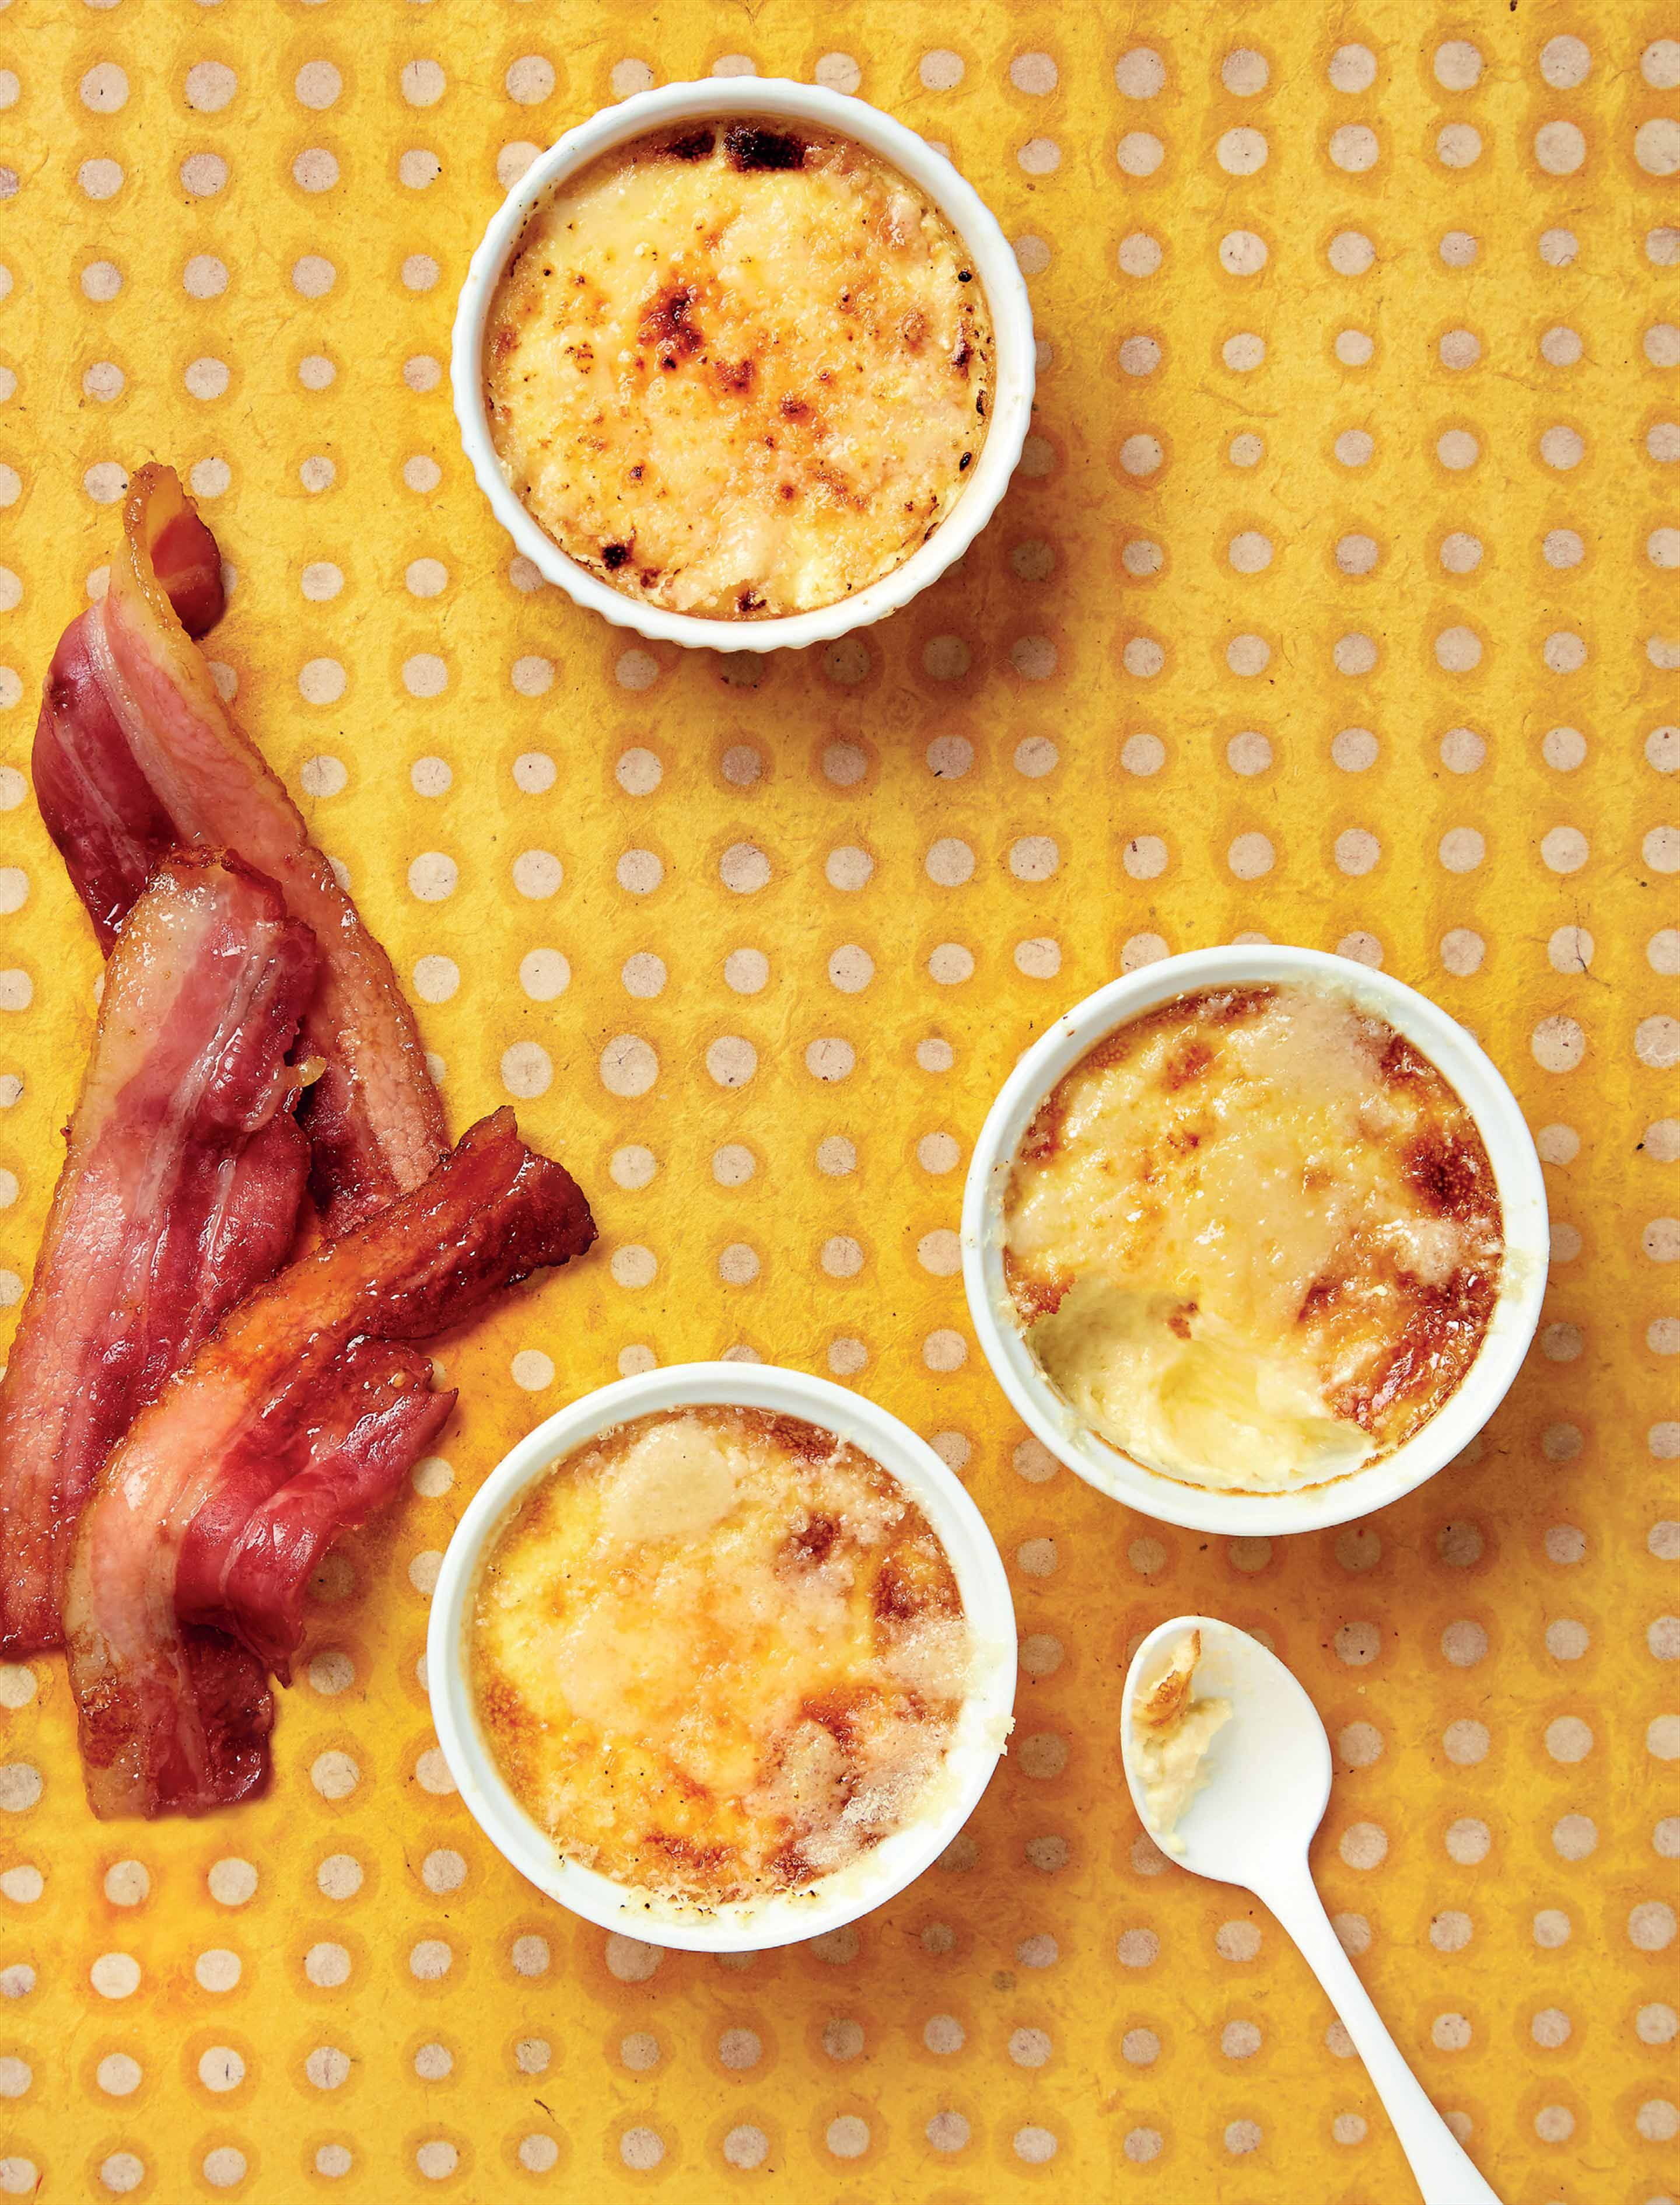 Parmesan custards & crispy bacon